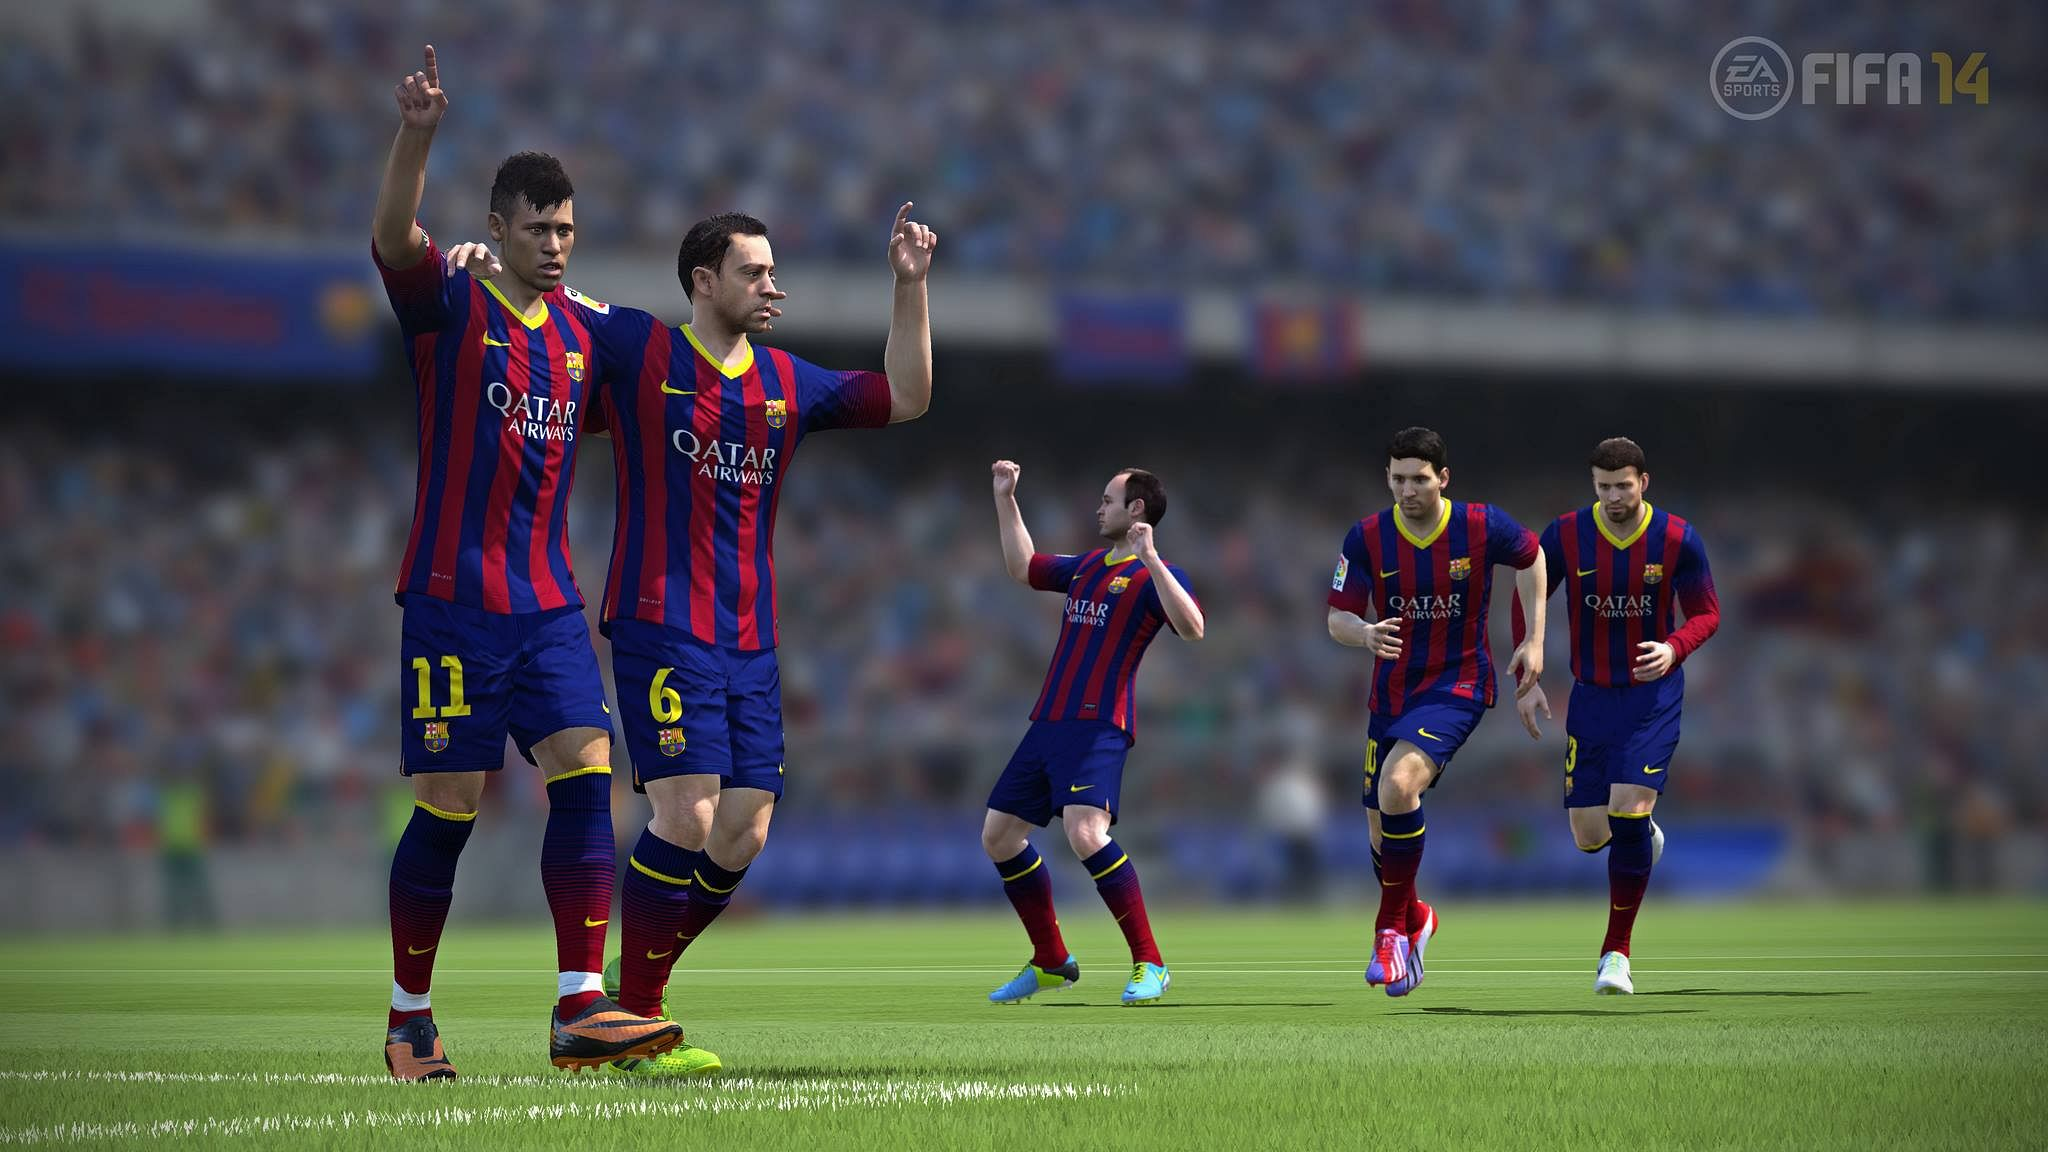 Best FIFA 14 formation for Barcelona